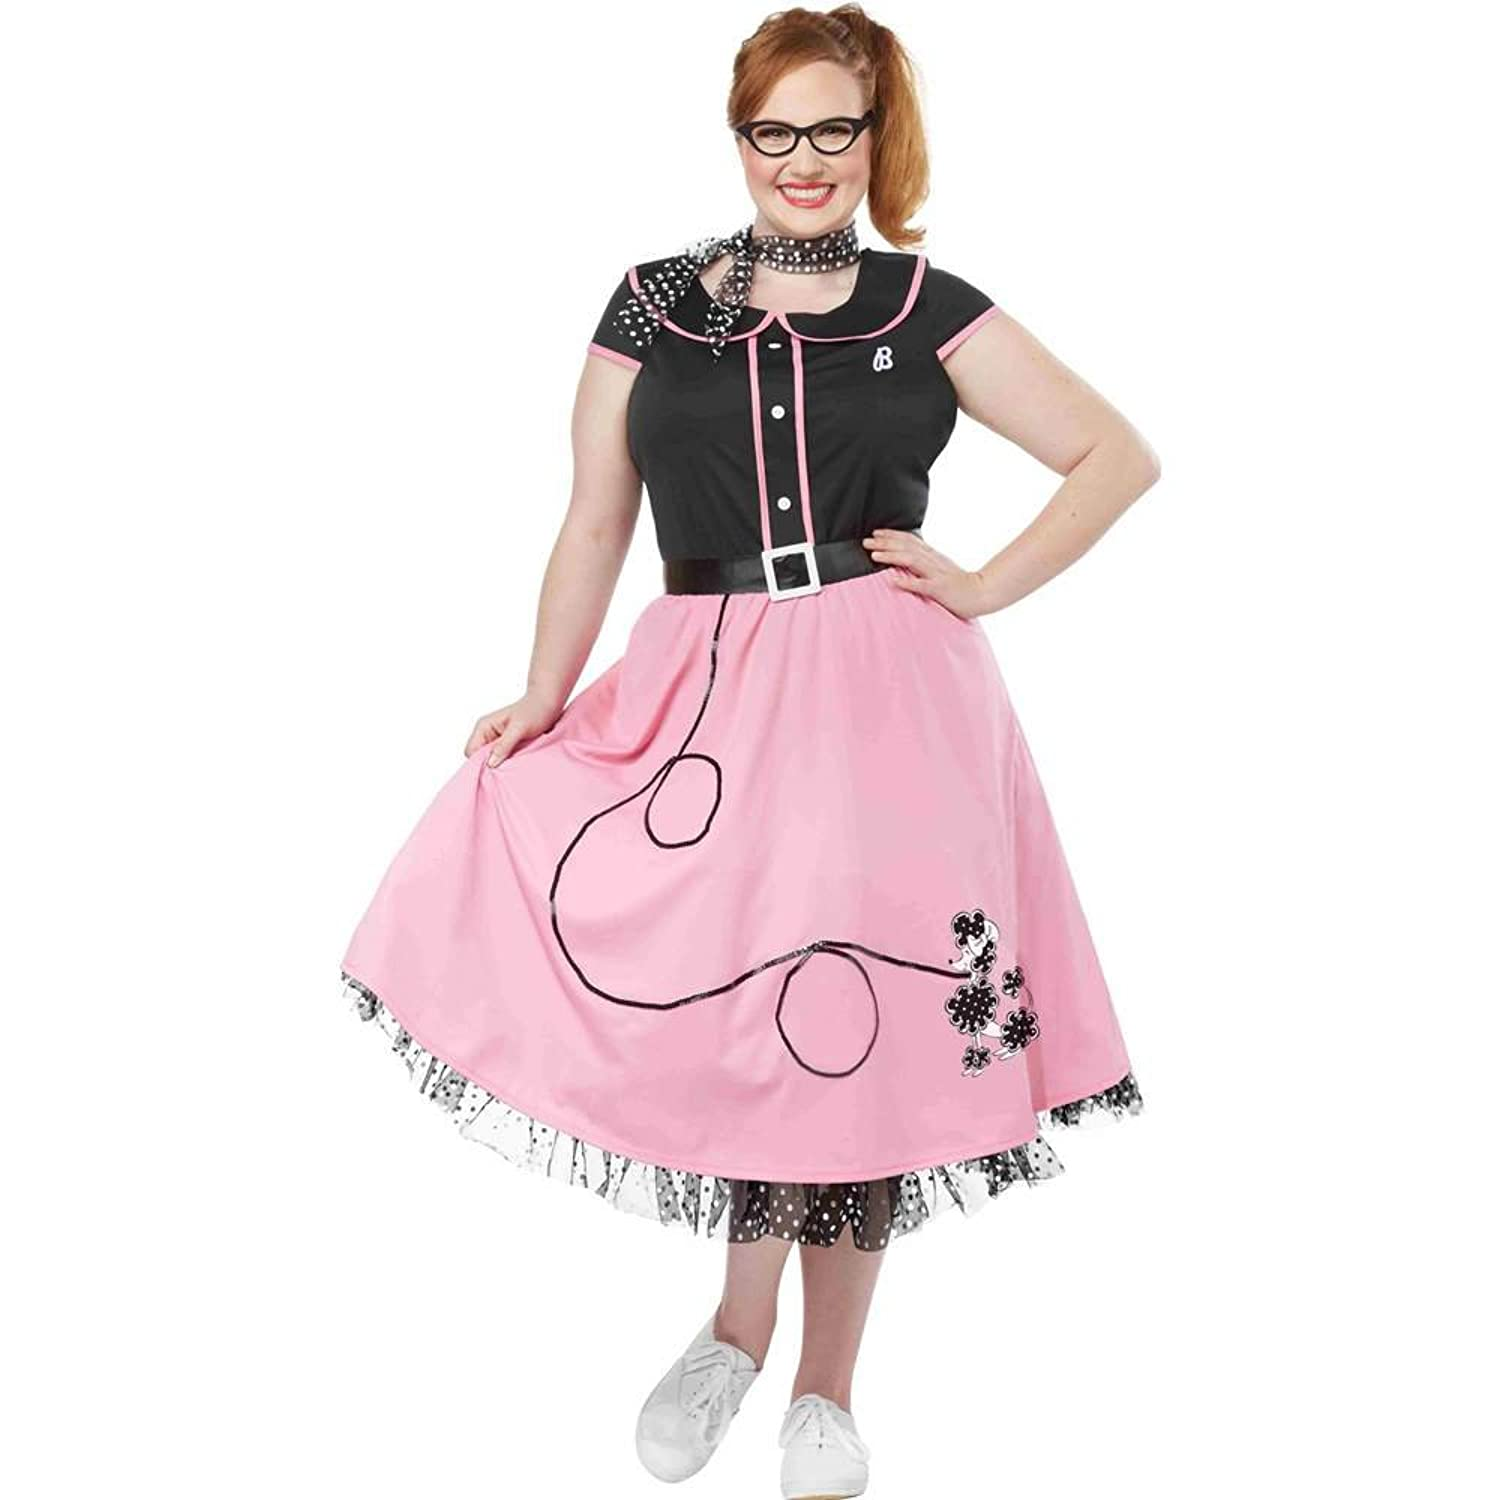 Amazon Womens 50s Sweetheart Plus Size Pink Poodle Skirt Costume Clothing